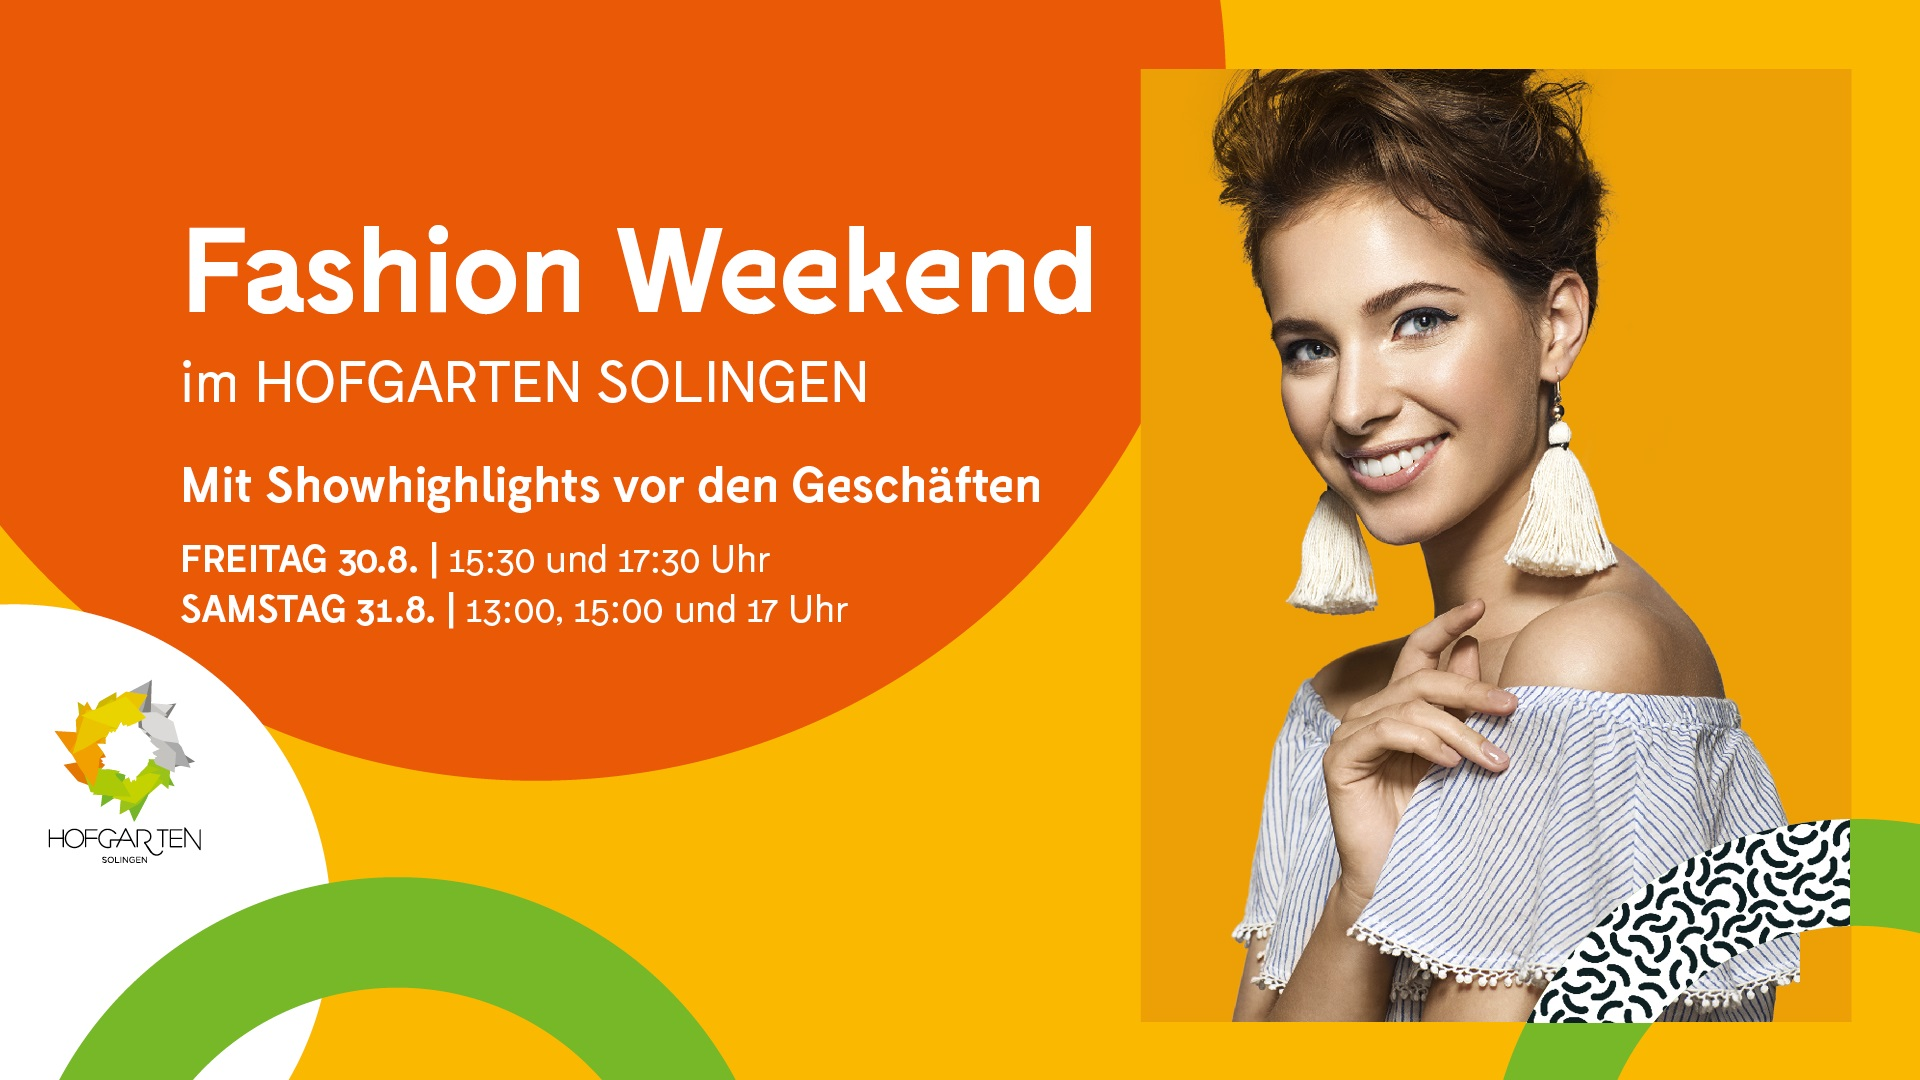 Fashion Weekend im HOFGARTEN SOLINGEN